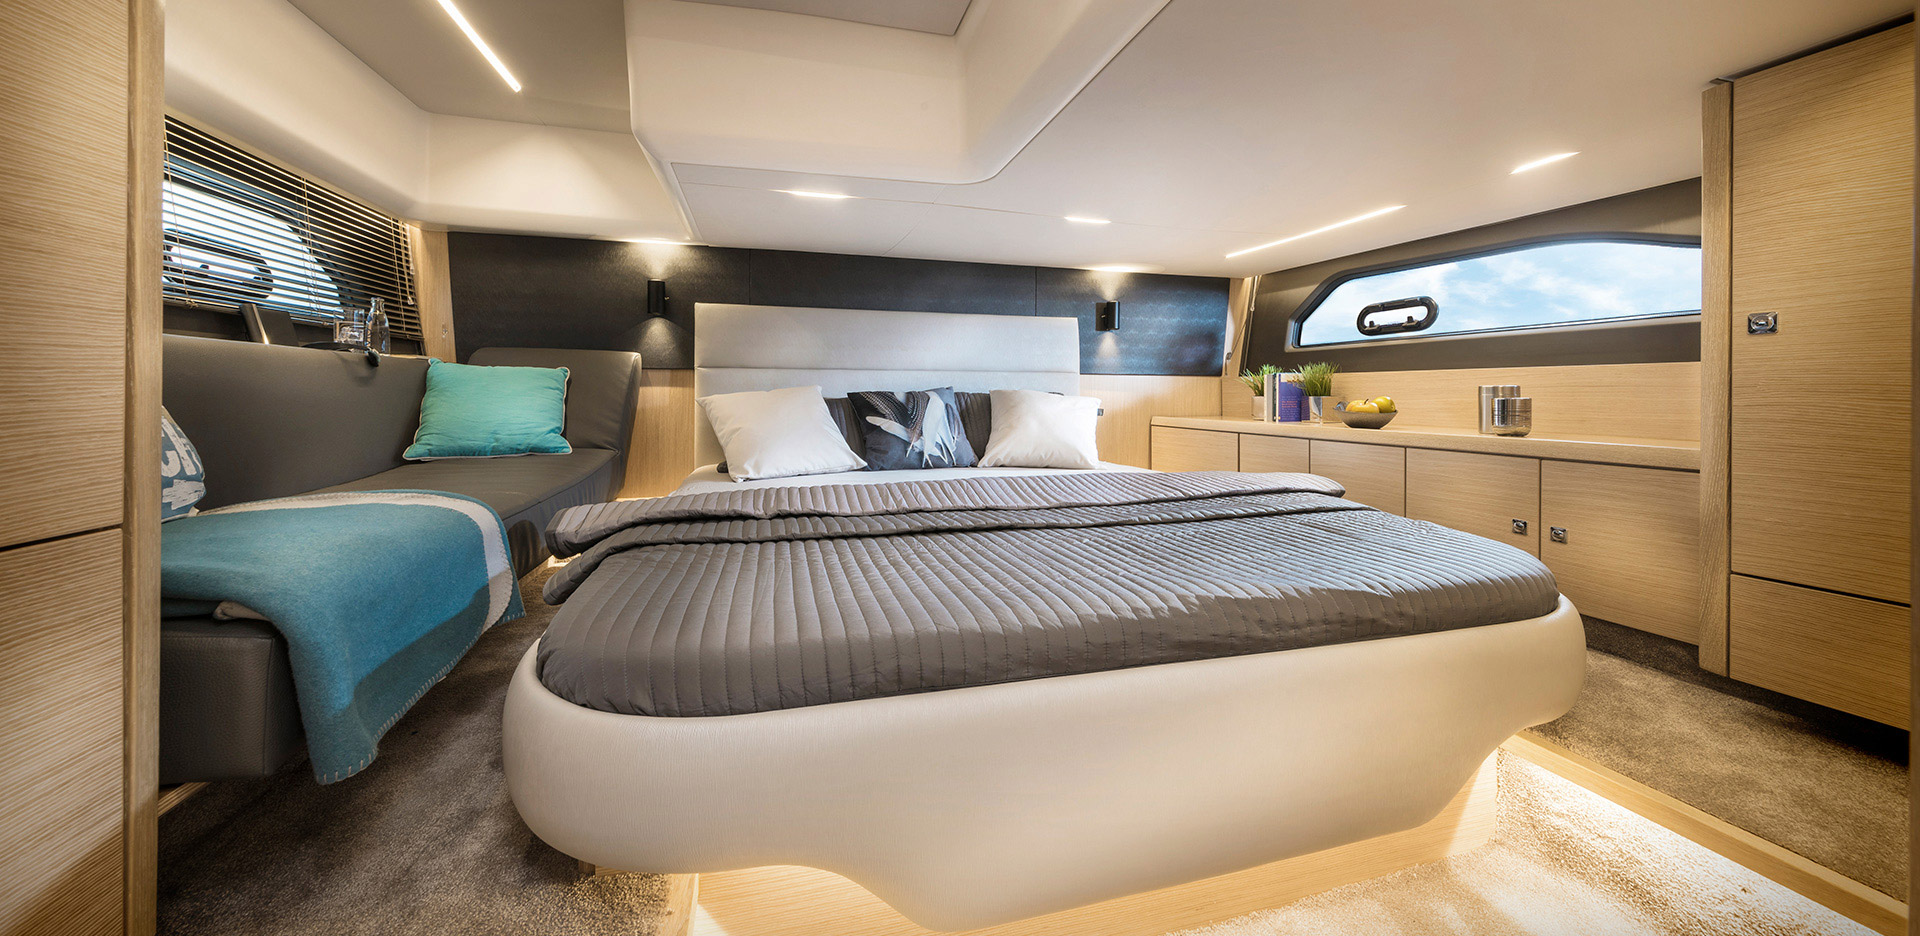 There's sleeping for four in two cabins, with plenty of storage and generous headroom.